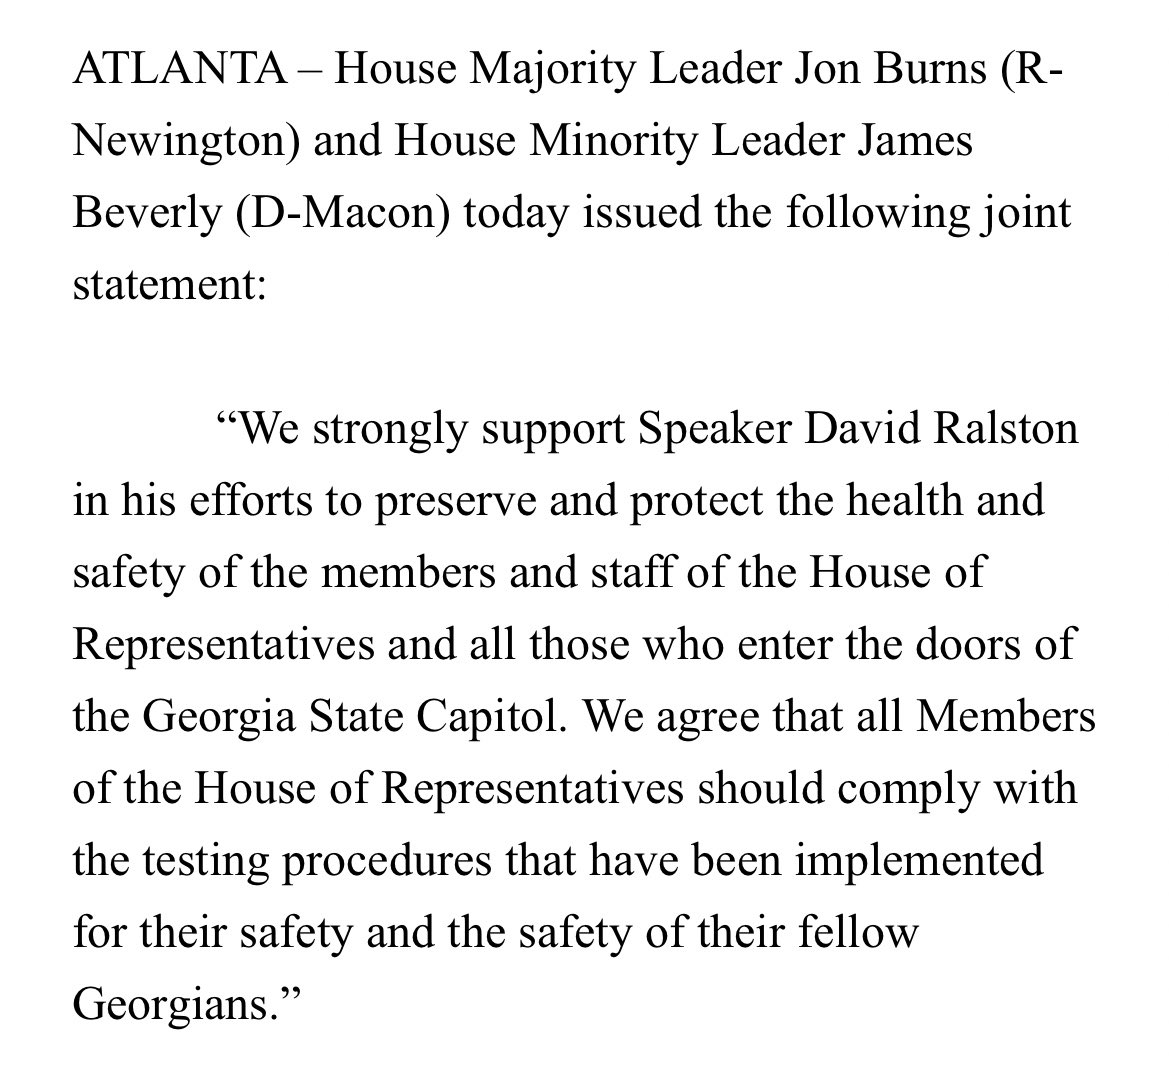 """Something both parties agree on: """"We strongly support Speaker David Ralston in his efforts to preserve and protect the health and safety of the members and staff of the House of Representatives and all those who enter the doors of the Georgia State Capitol."""" #gapol"""